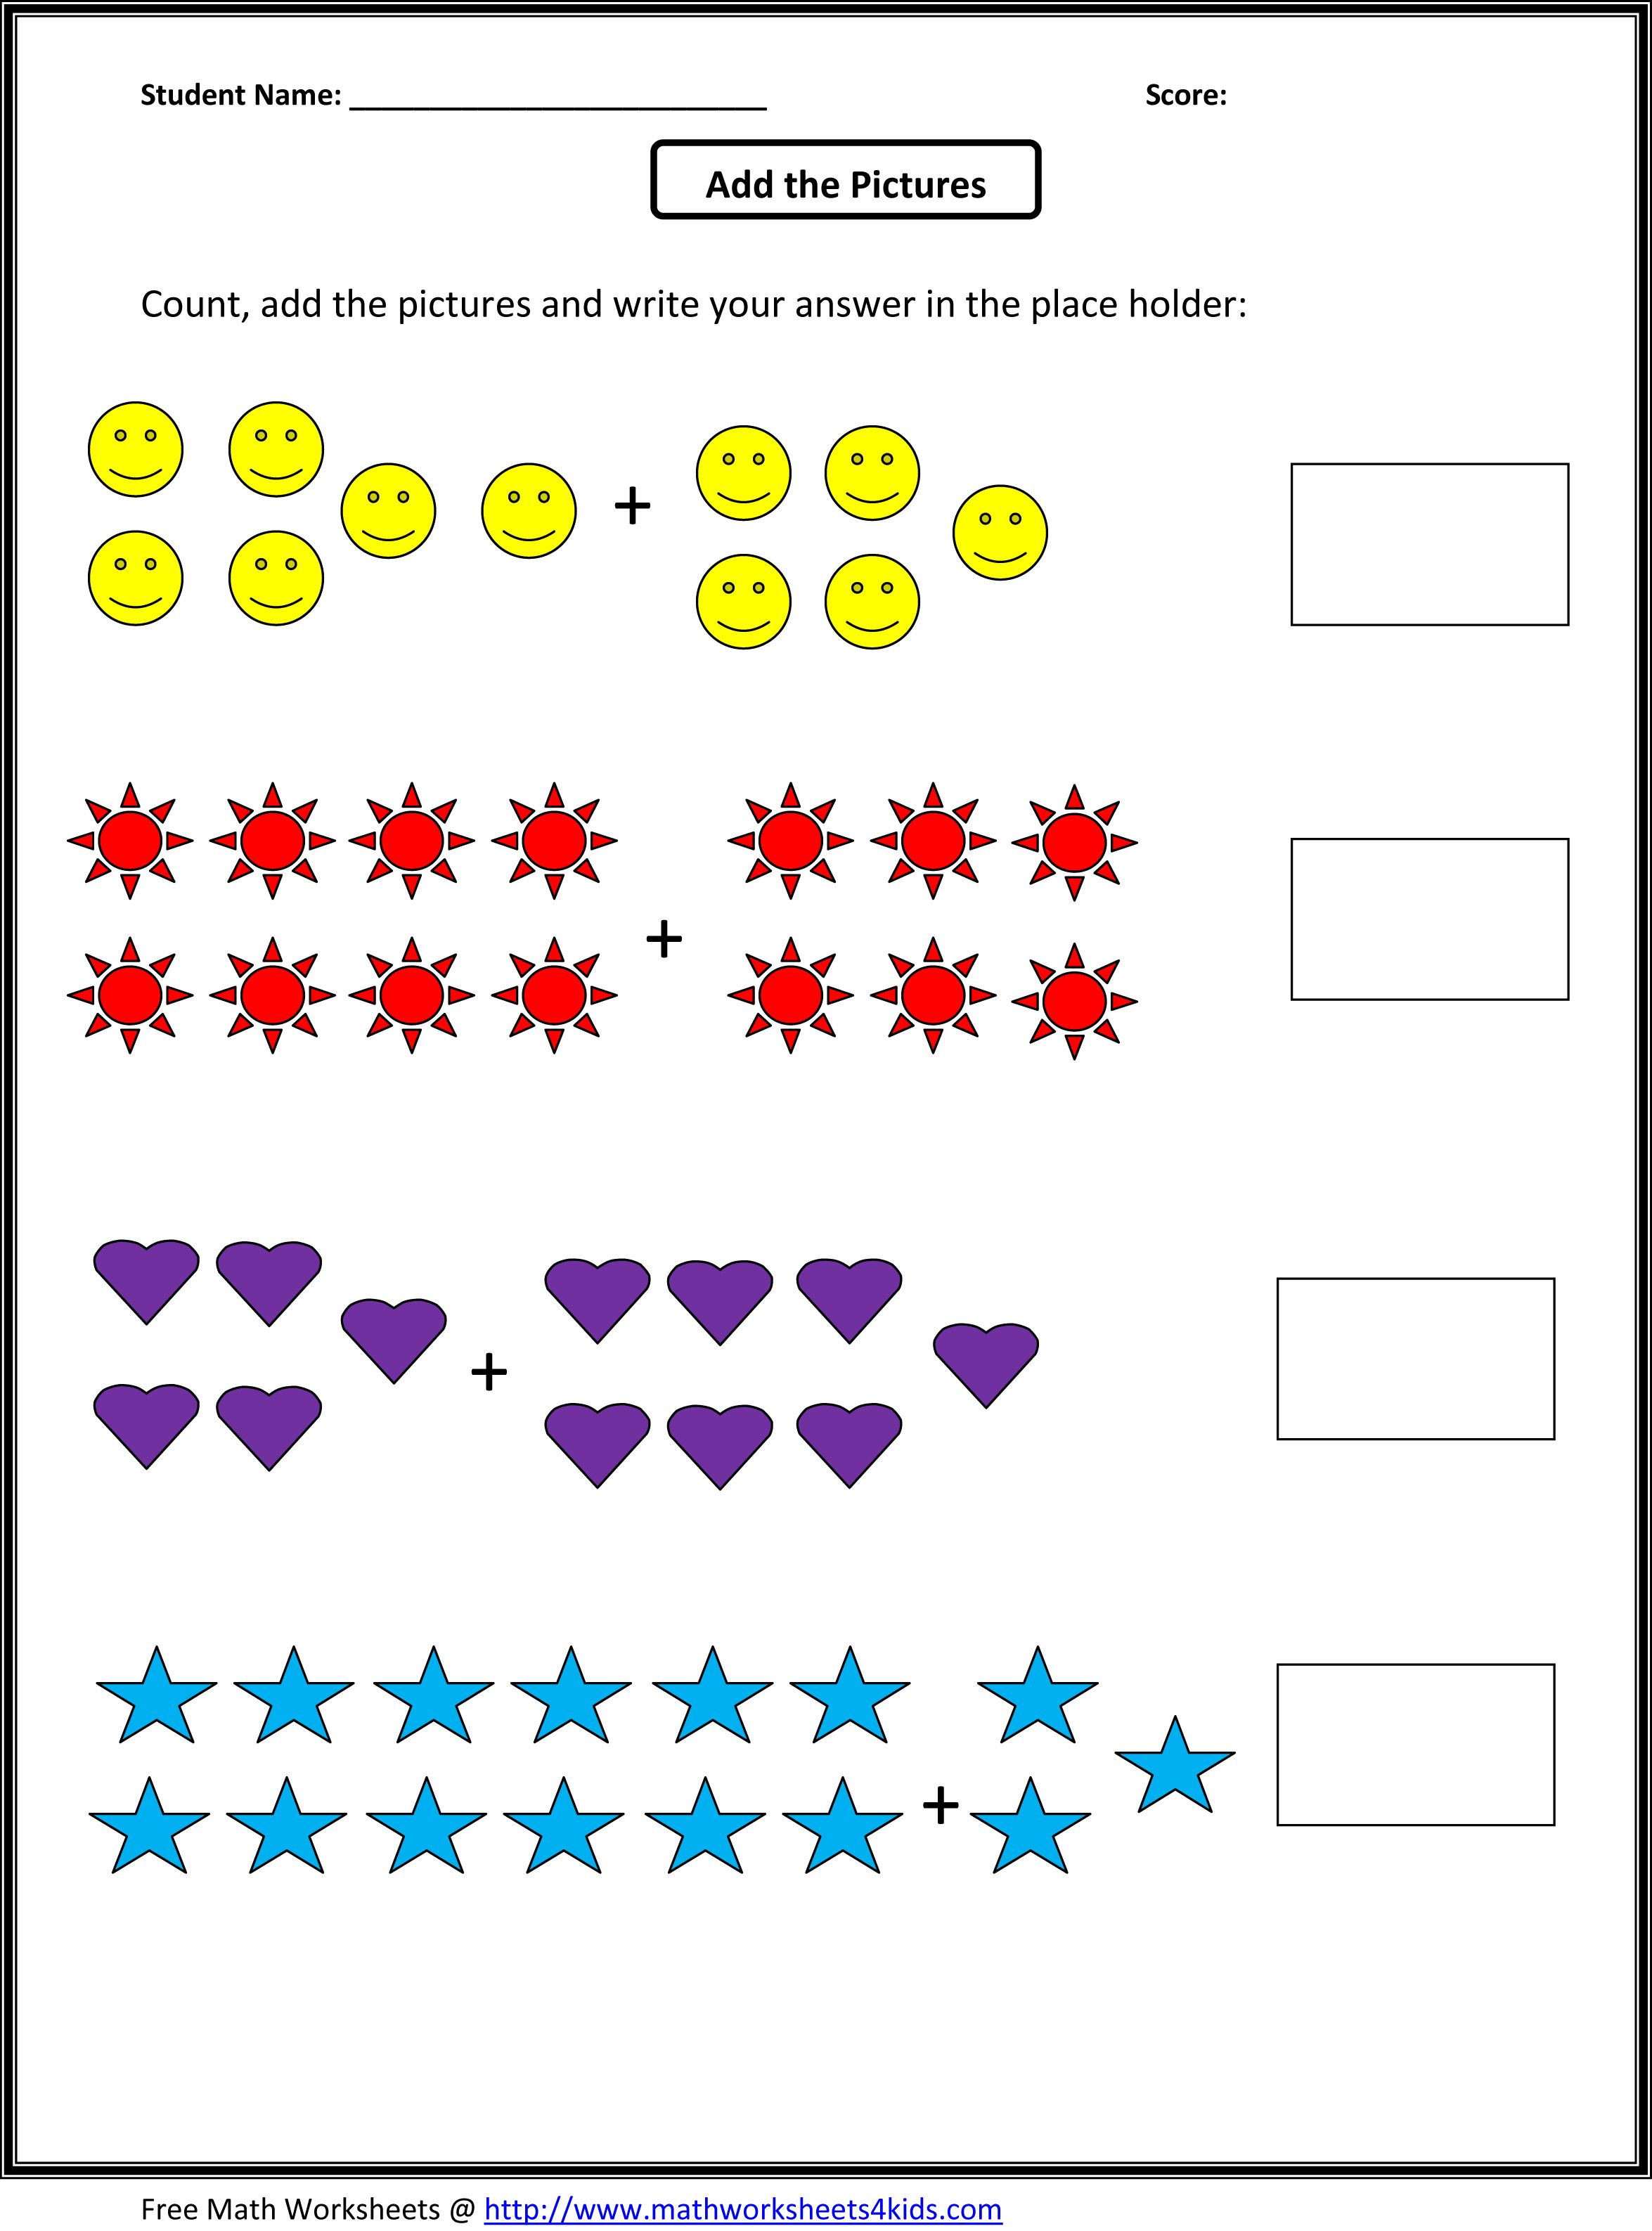 Grade 1 Addition Math Worksheets